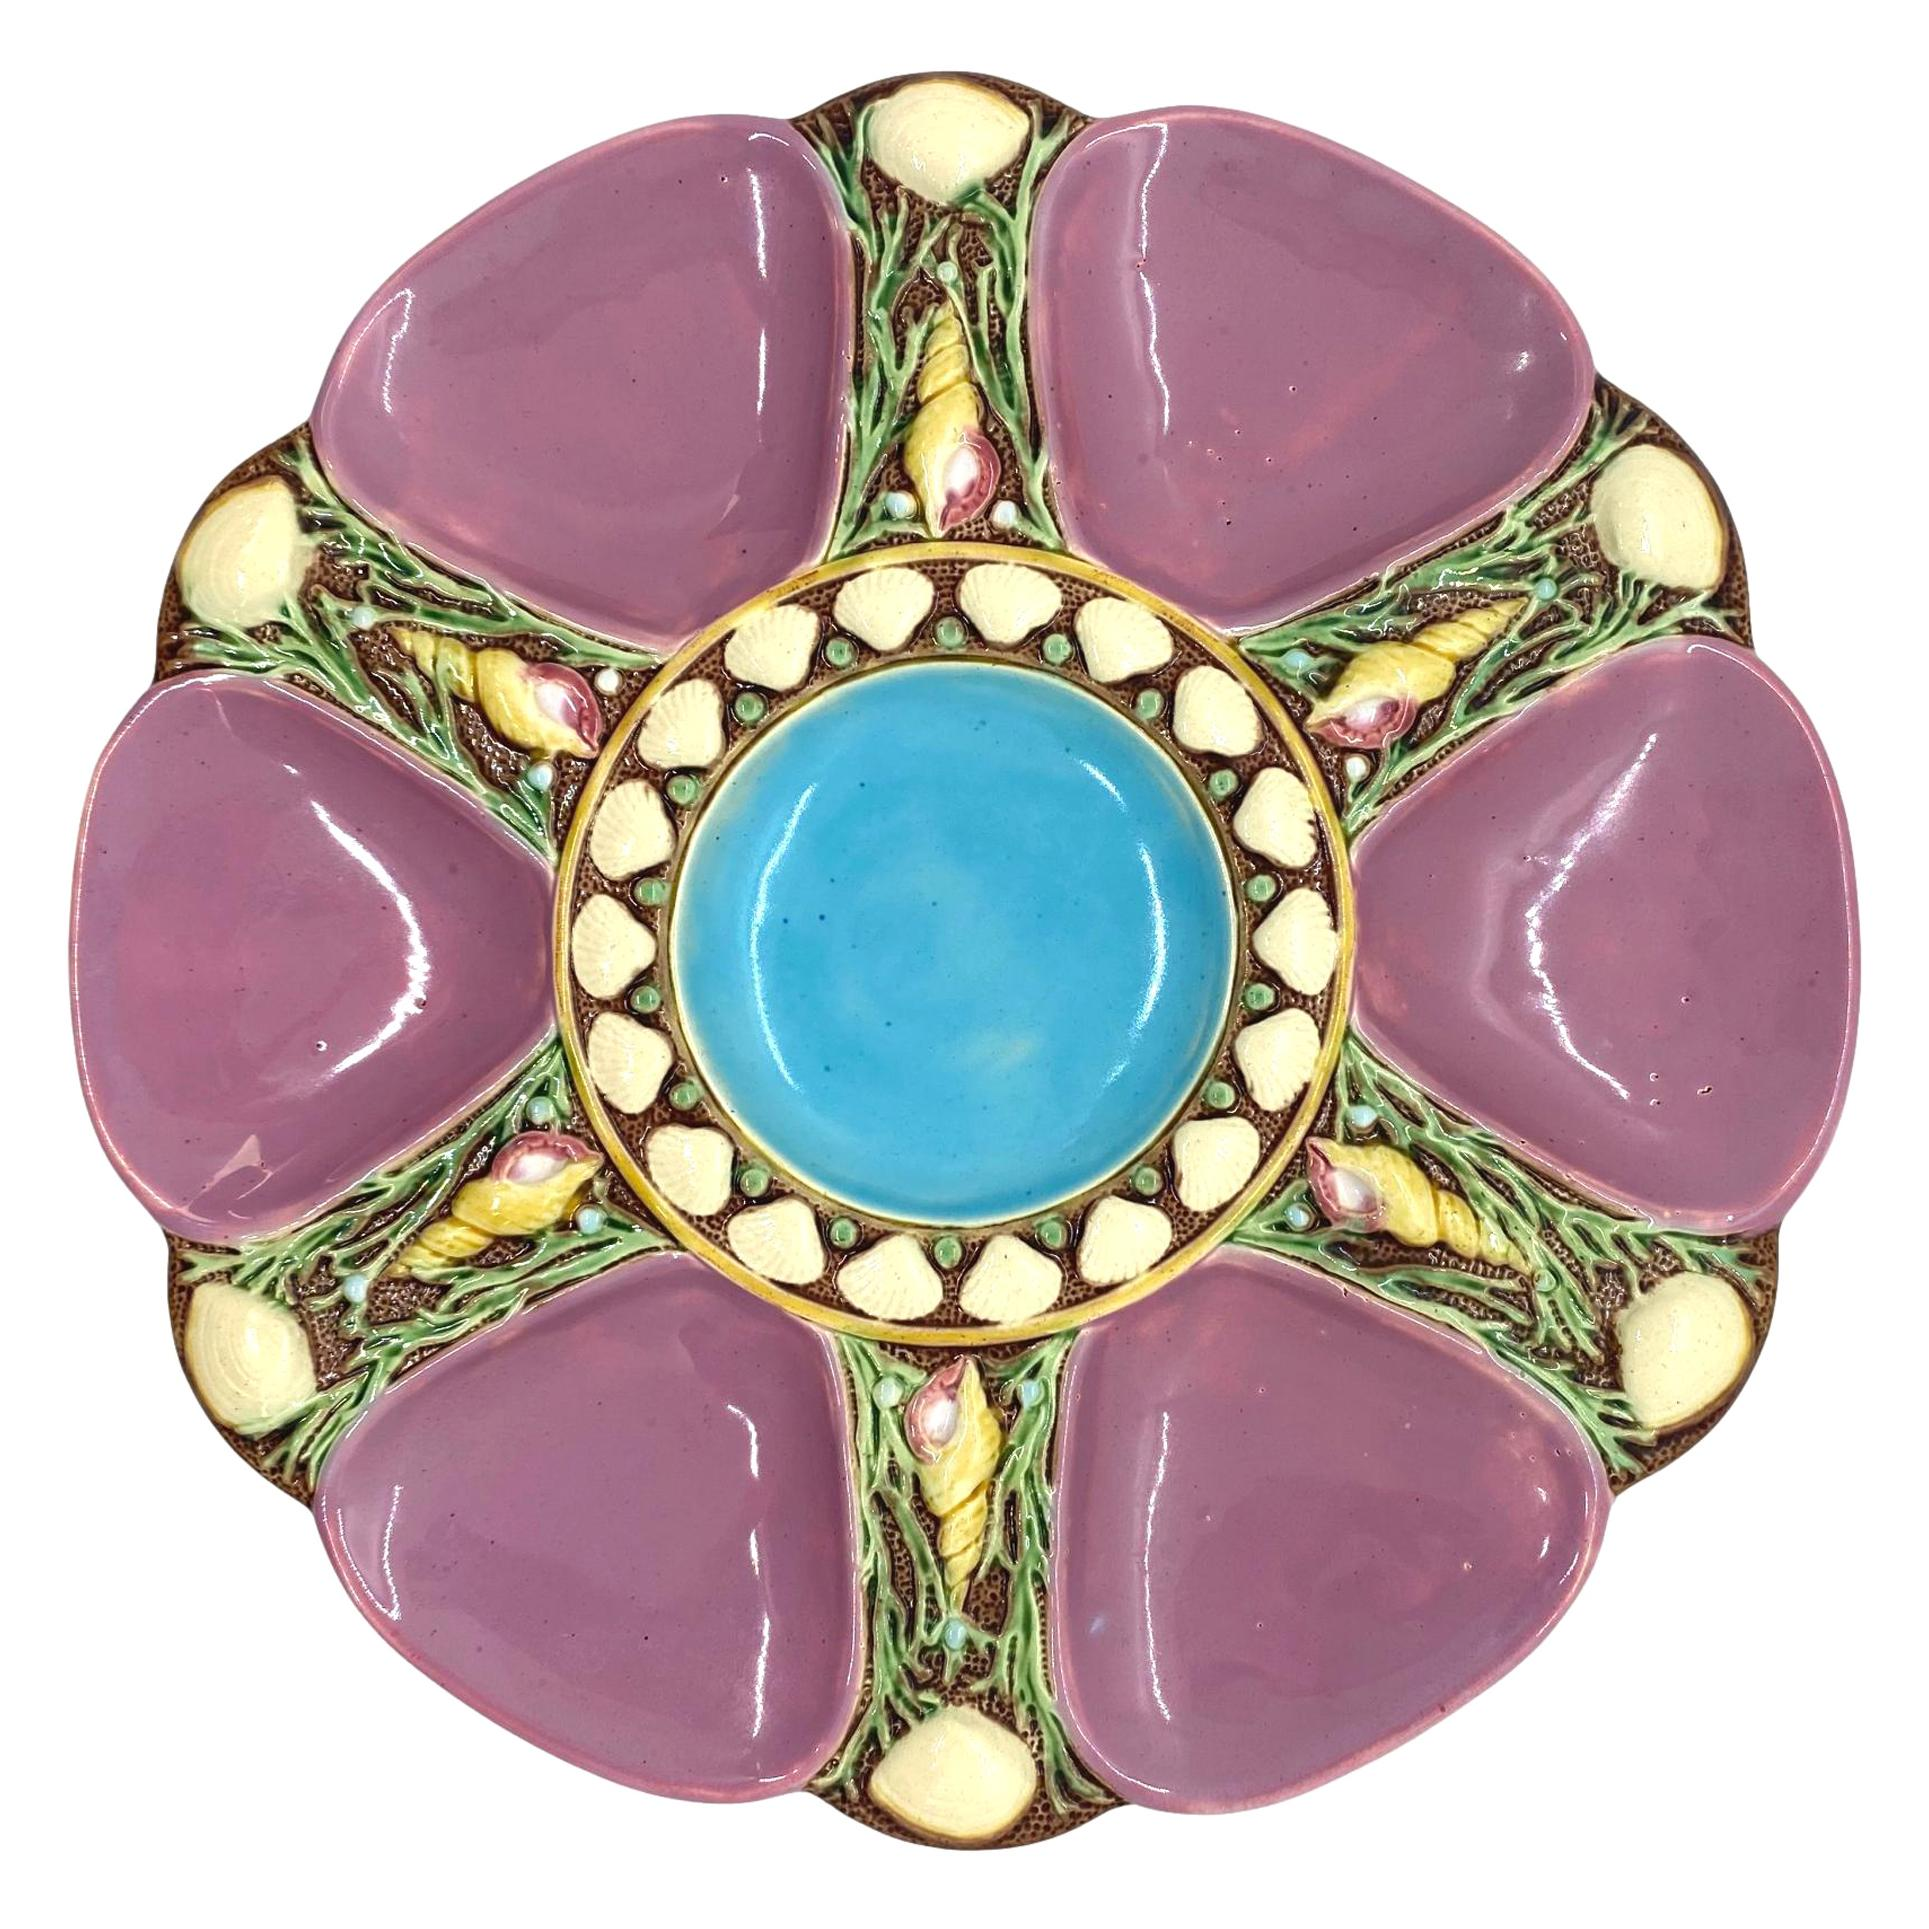 Minton Majolica Pink Oyster Plate, circa 1873